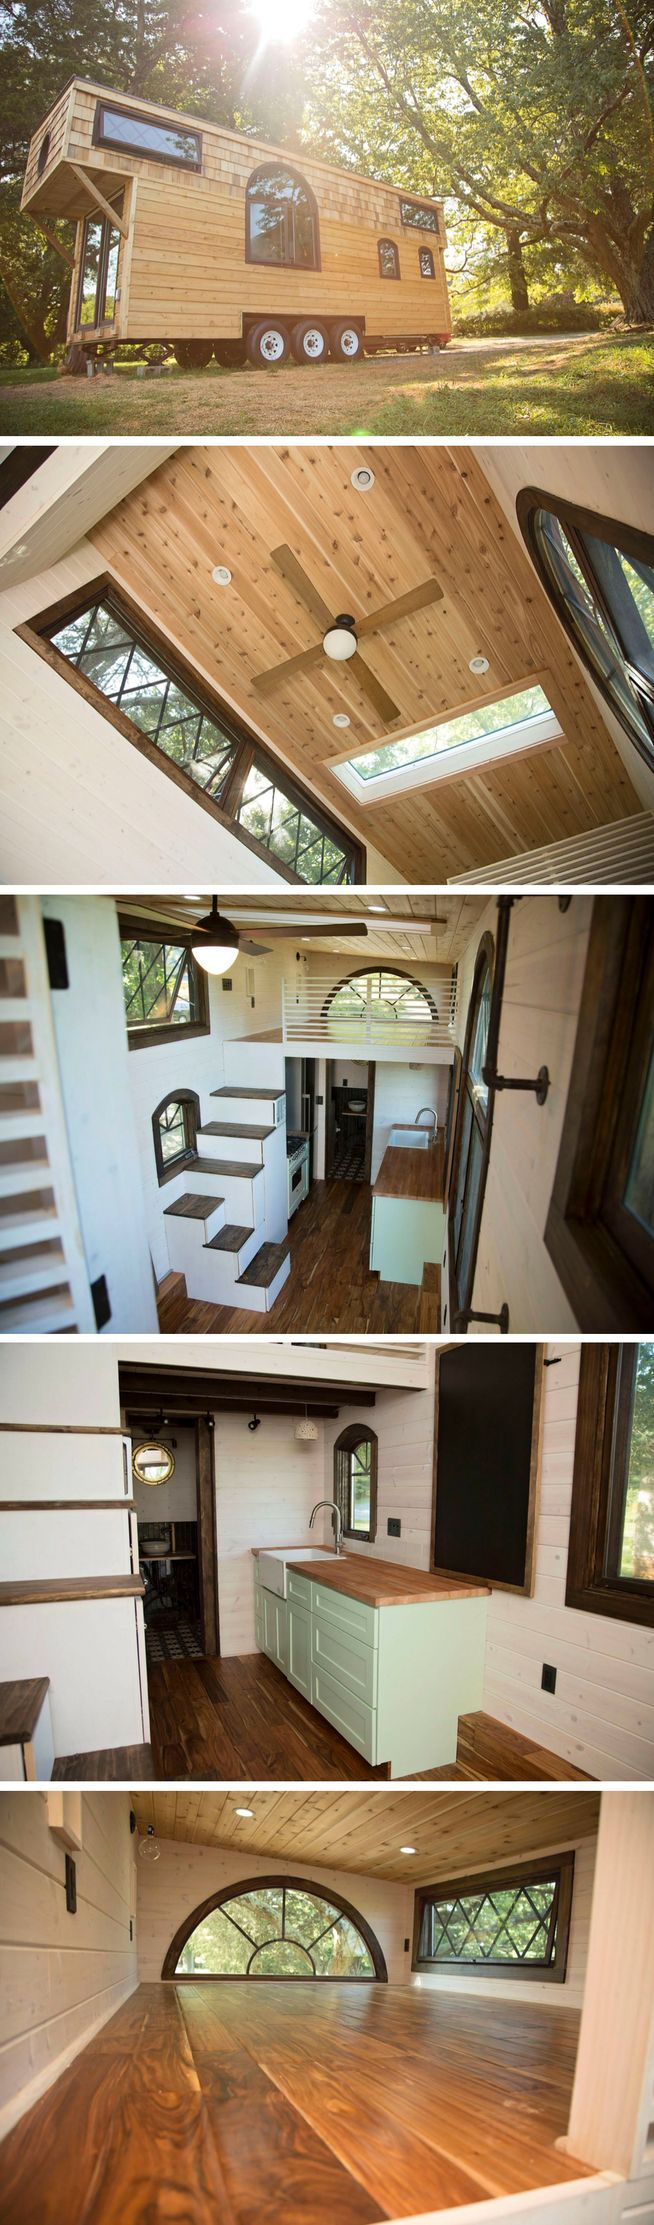 Best 25+ Tiny house on wheels ideas on Pinterest